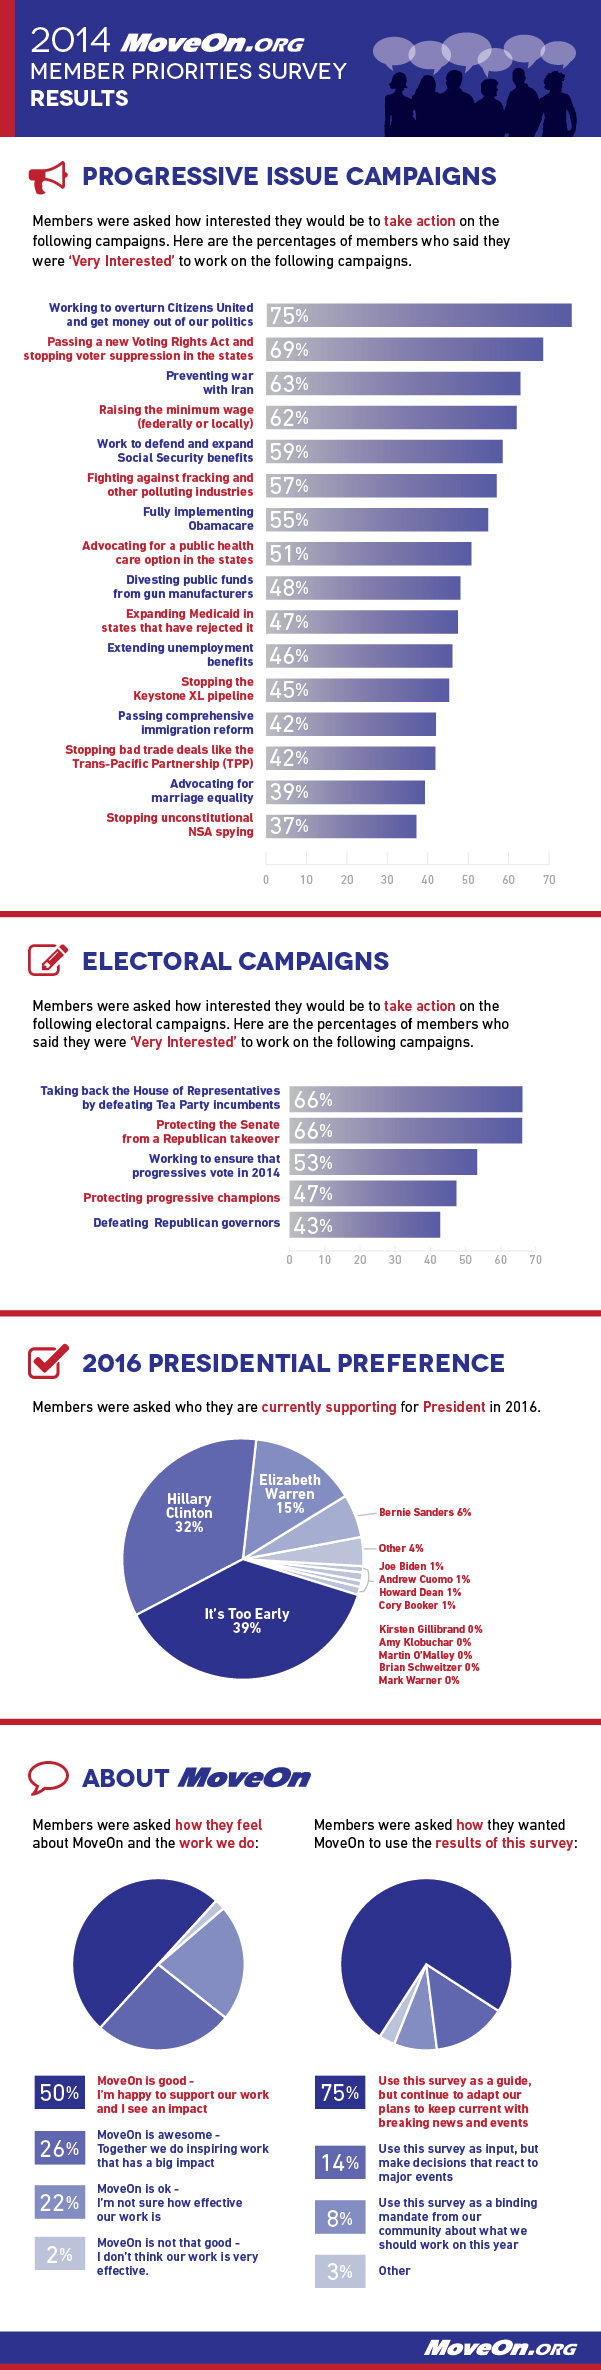 MoveOn Member Survey results